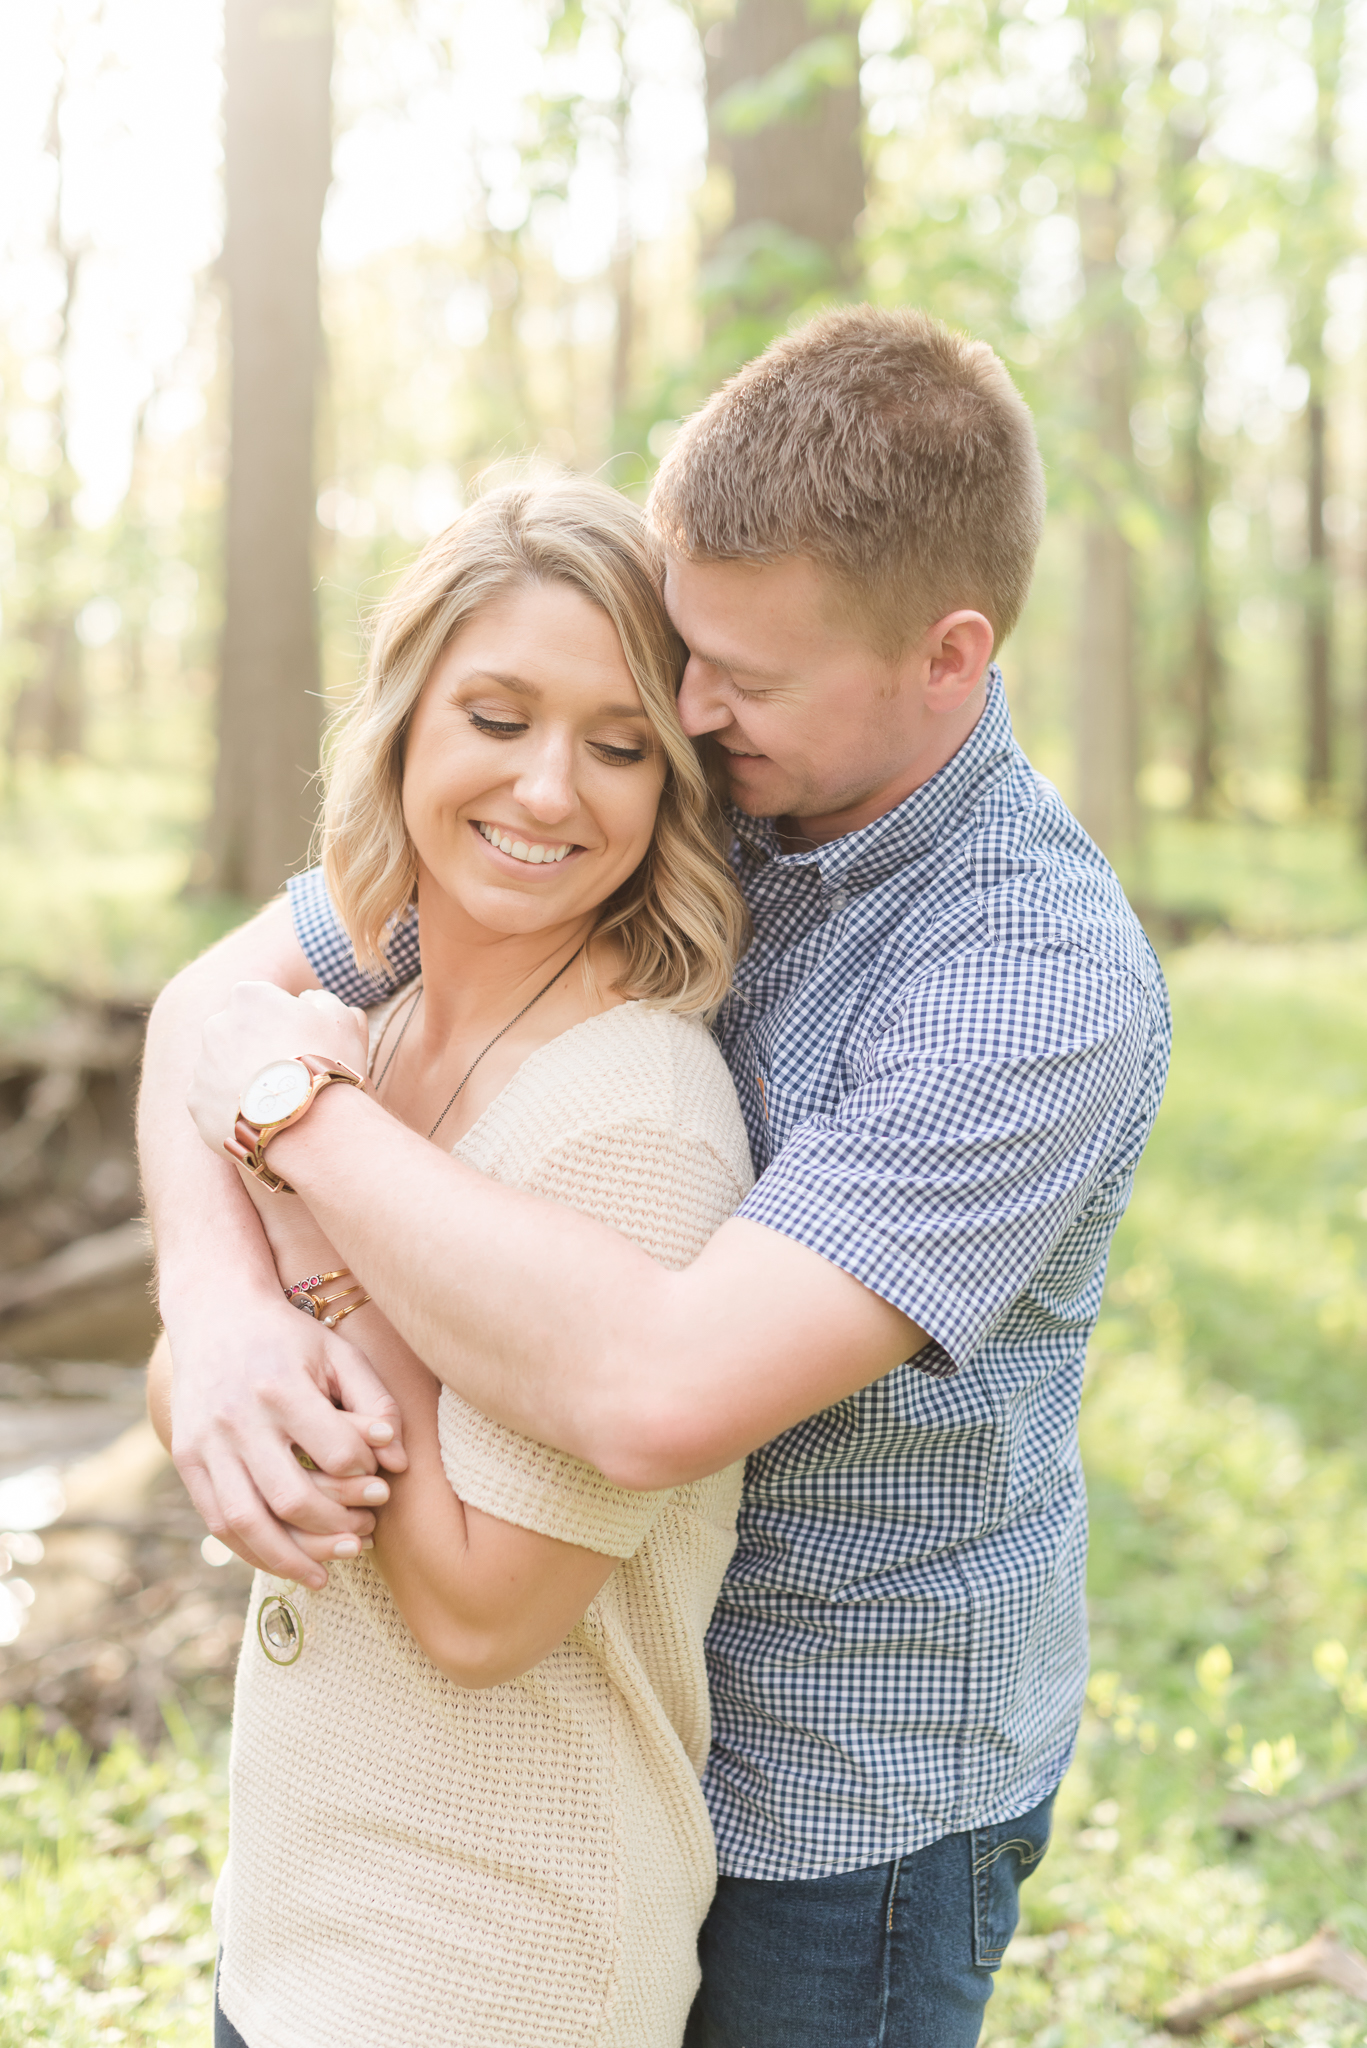 Richie Woods Nature Preserve and Mustard Seed Gardens Engagement Session Wedding Photos-21.jpg